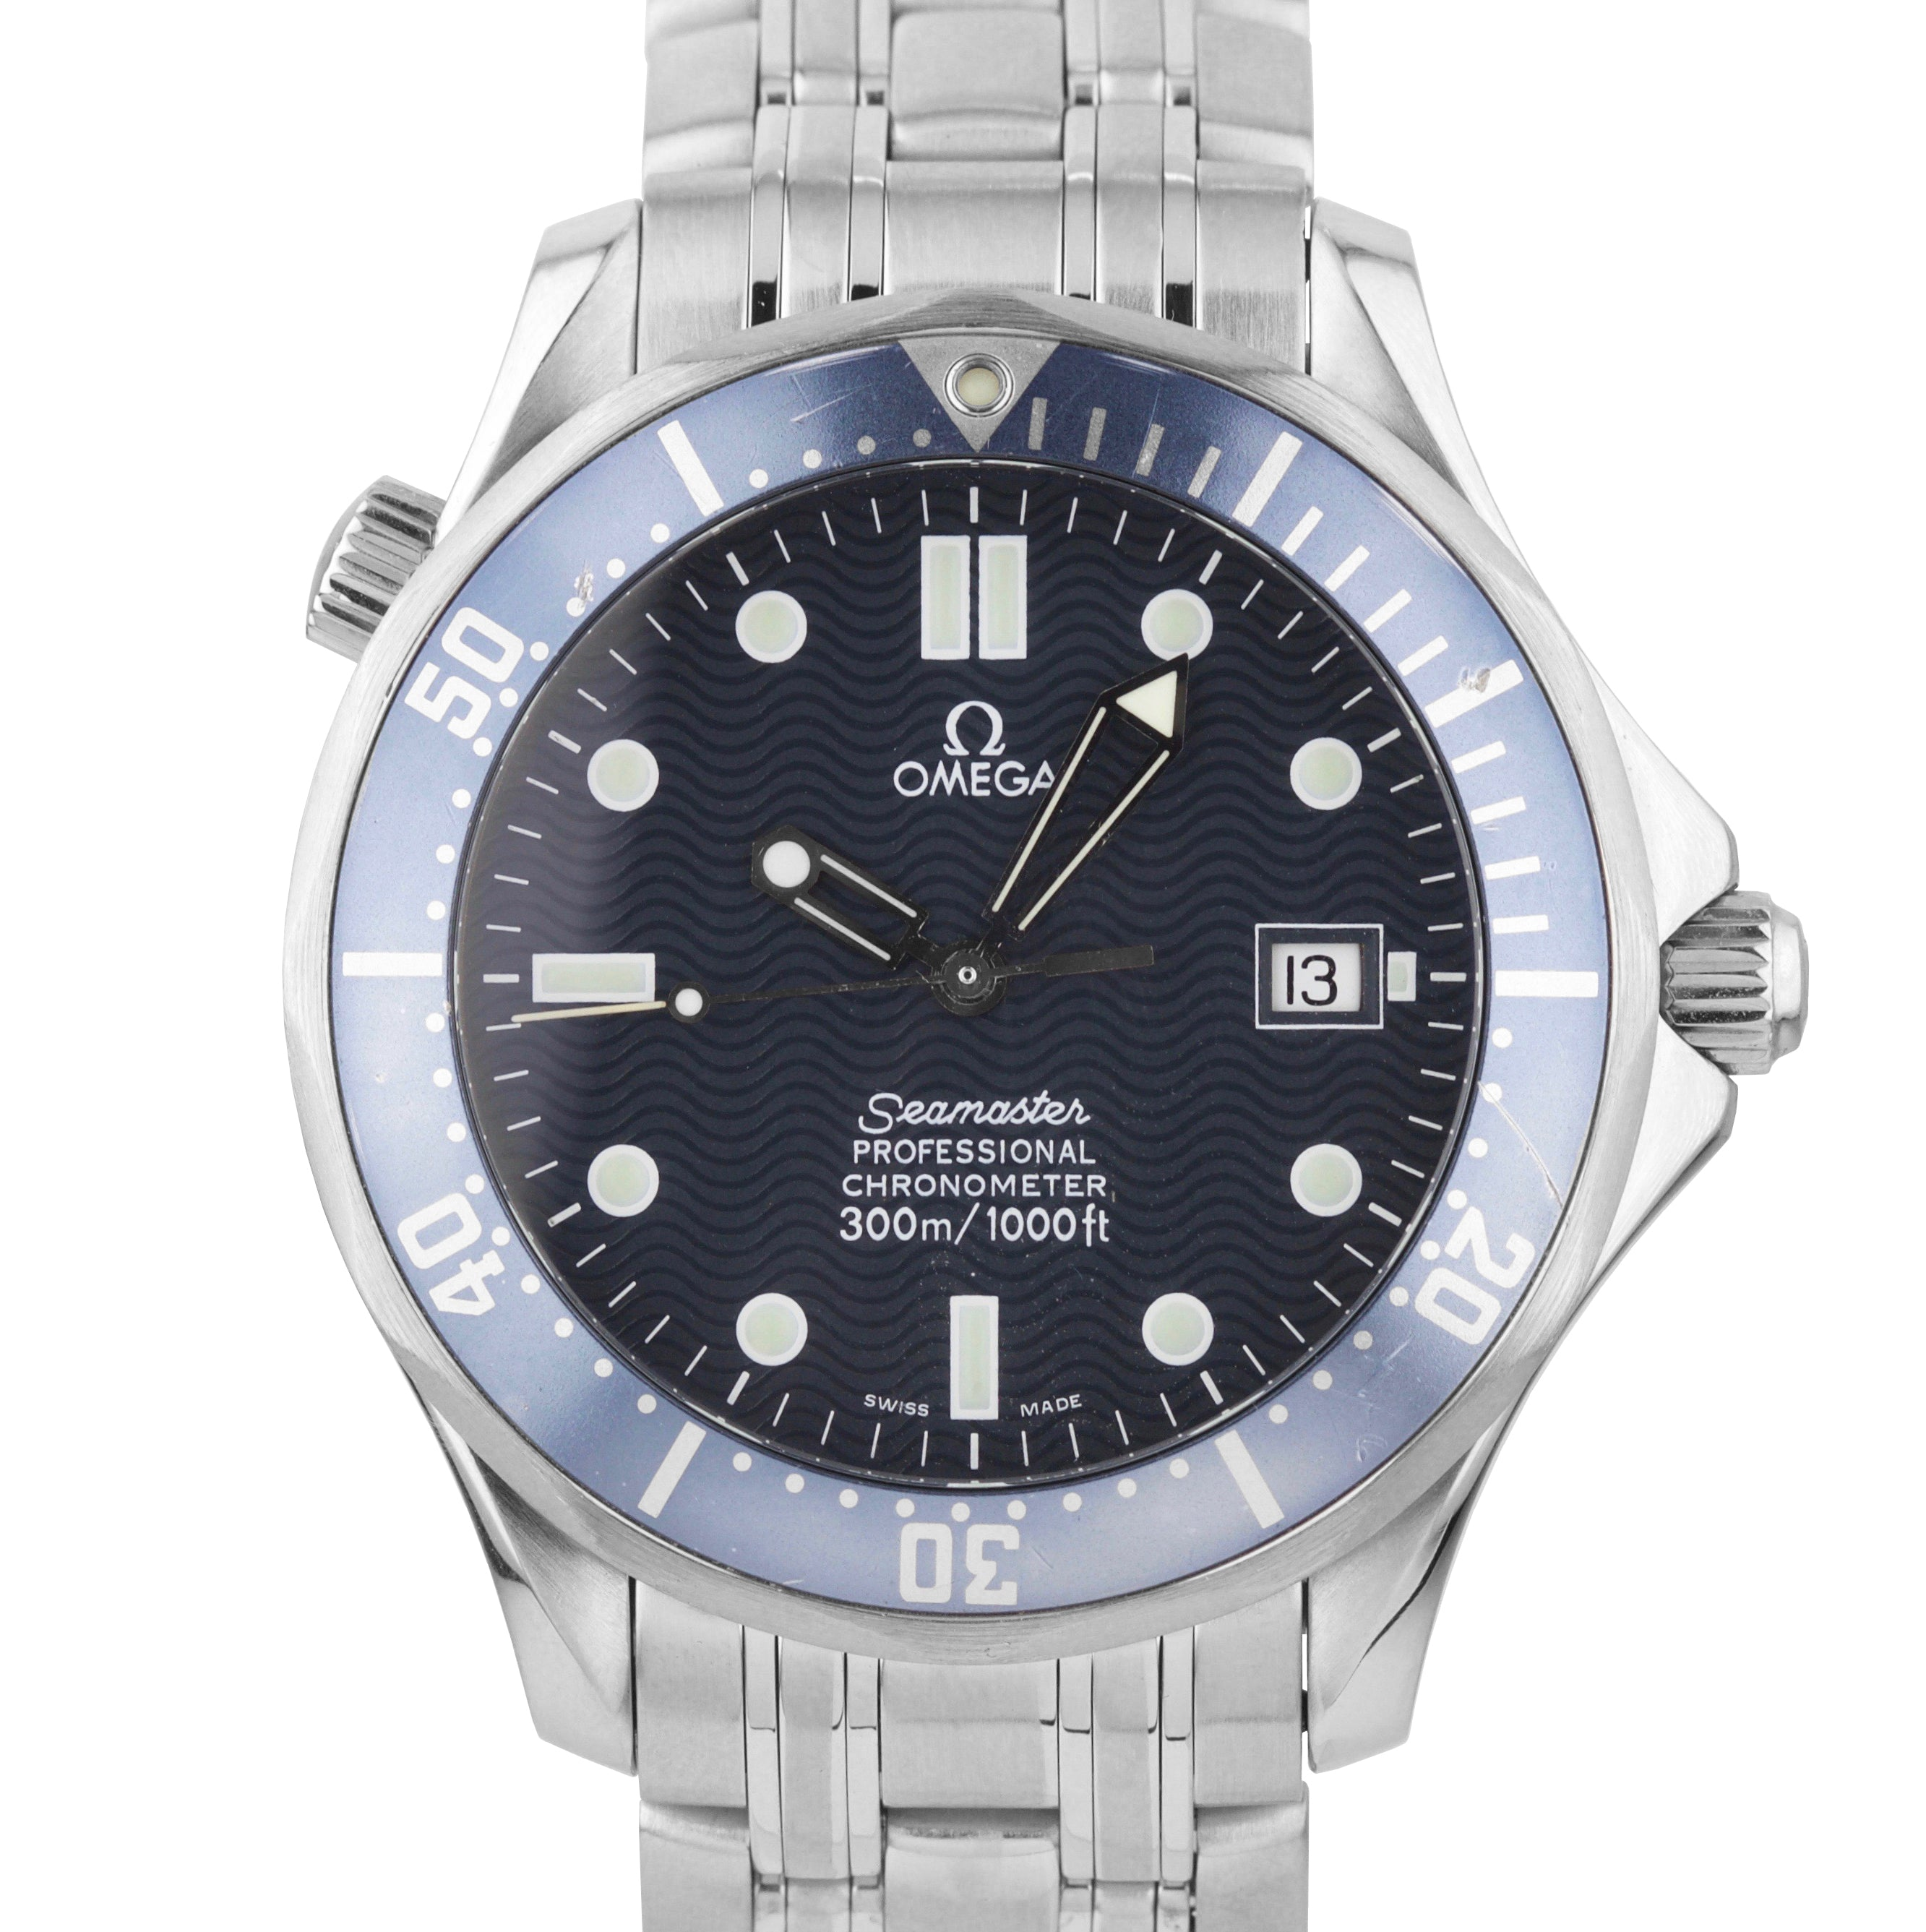 Omega Seamaster Professional 300 Blue Wave Automatic 41mm Watch 168.1623 2531.80